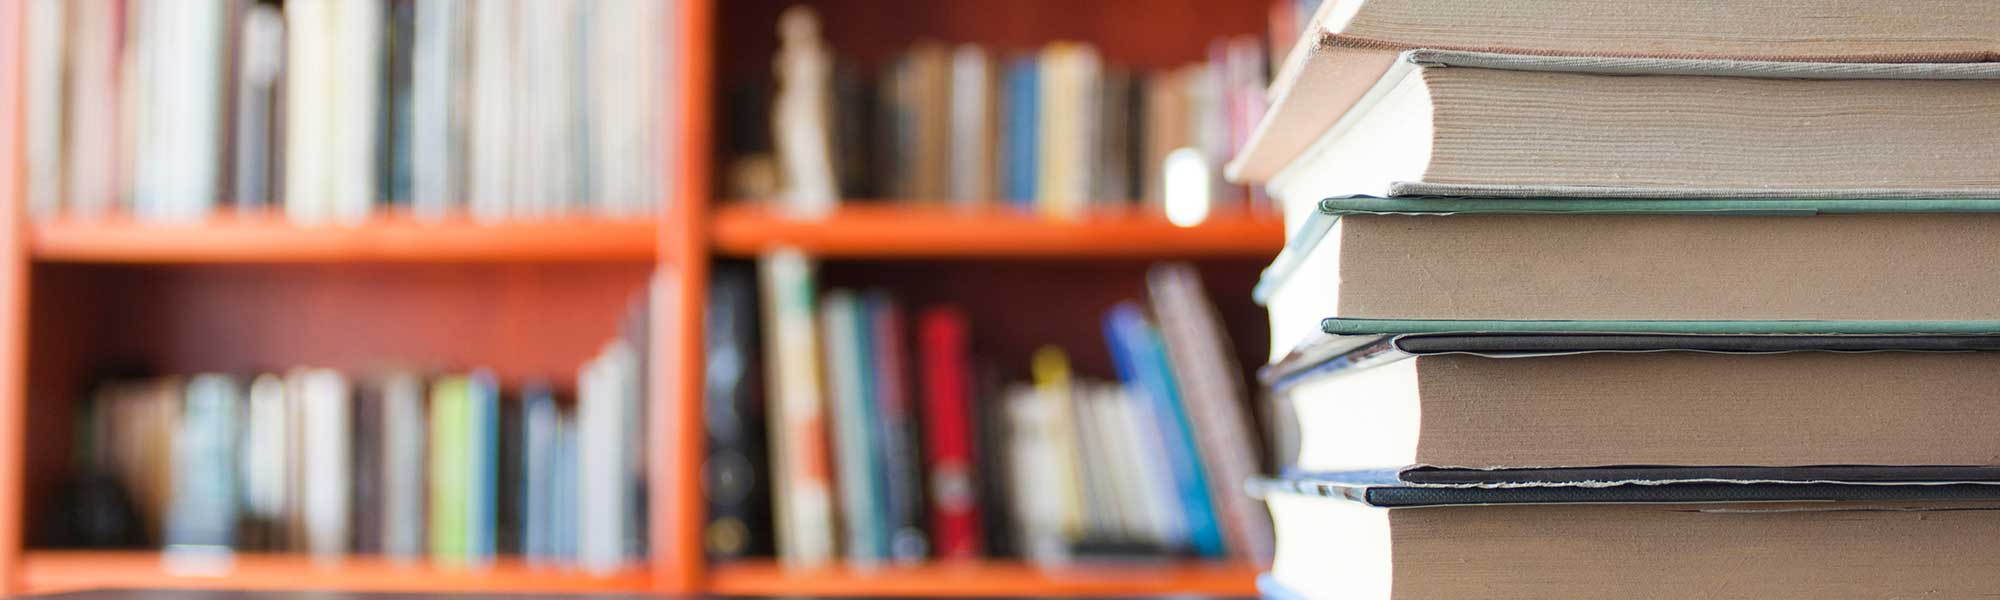 Books on table and on shelves